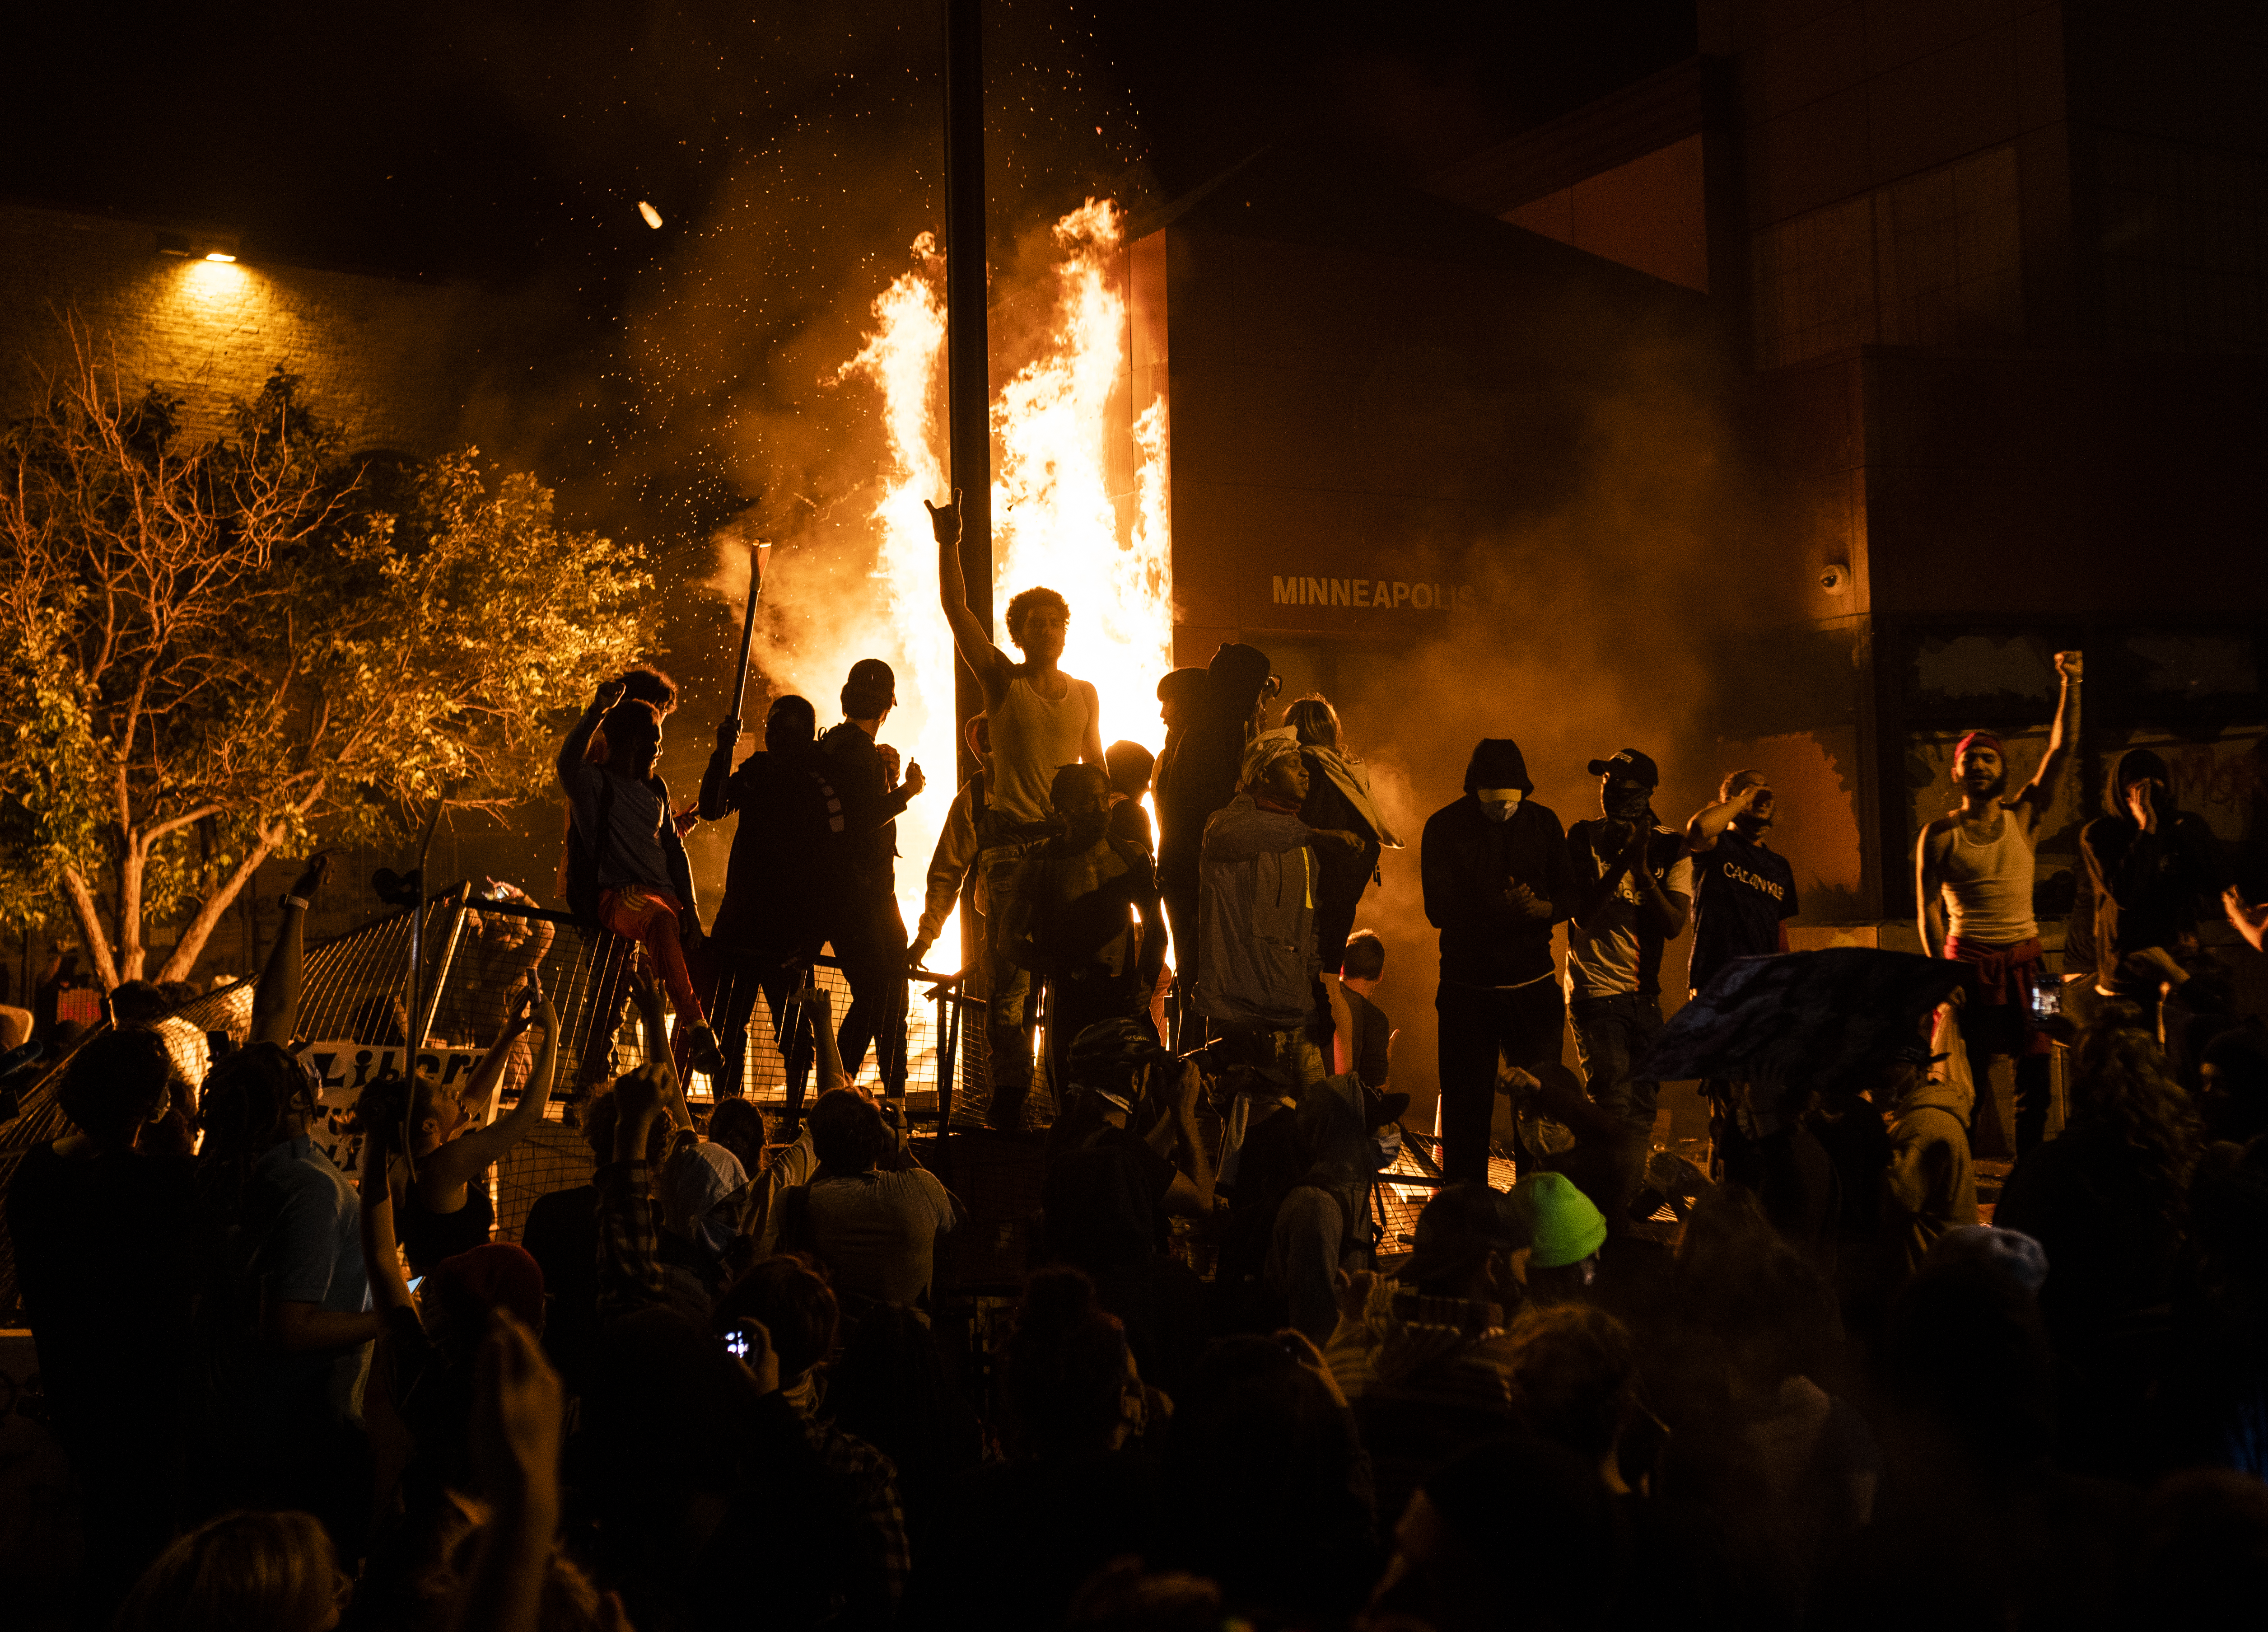 Protesters cheer as the Third Police Precinct burns behind them on May 28, 2020 in Minneapolis, Minnesota. (Photo by Stephen Maturen/Getty Images)